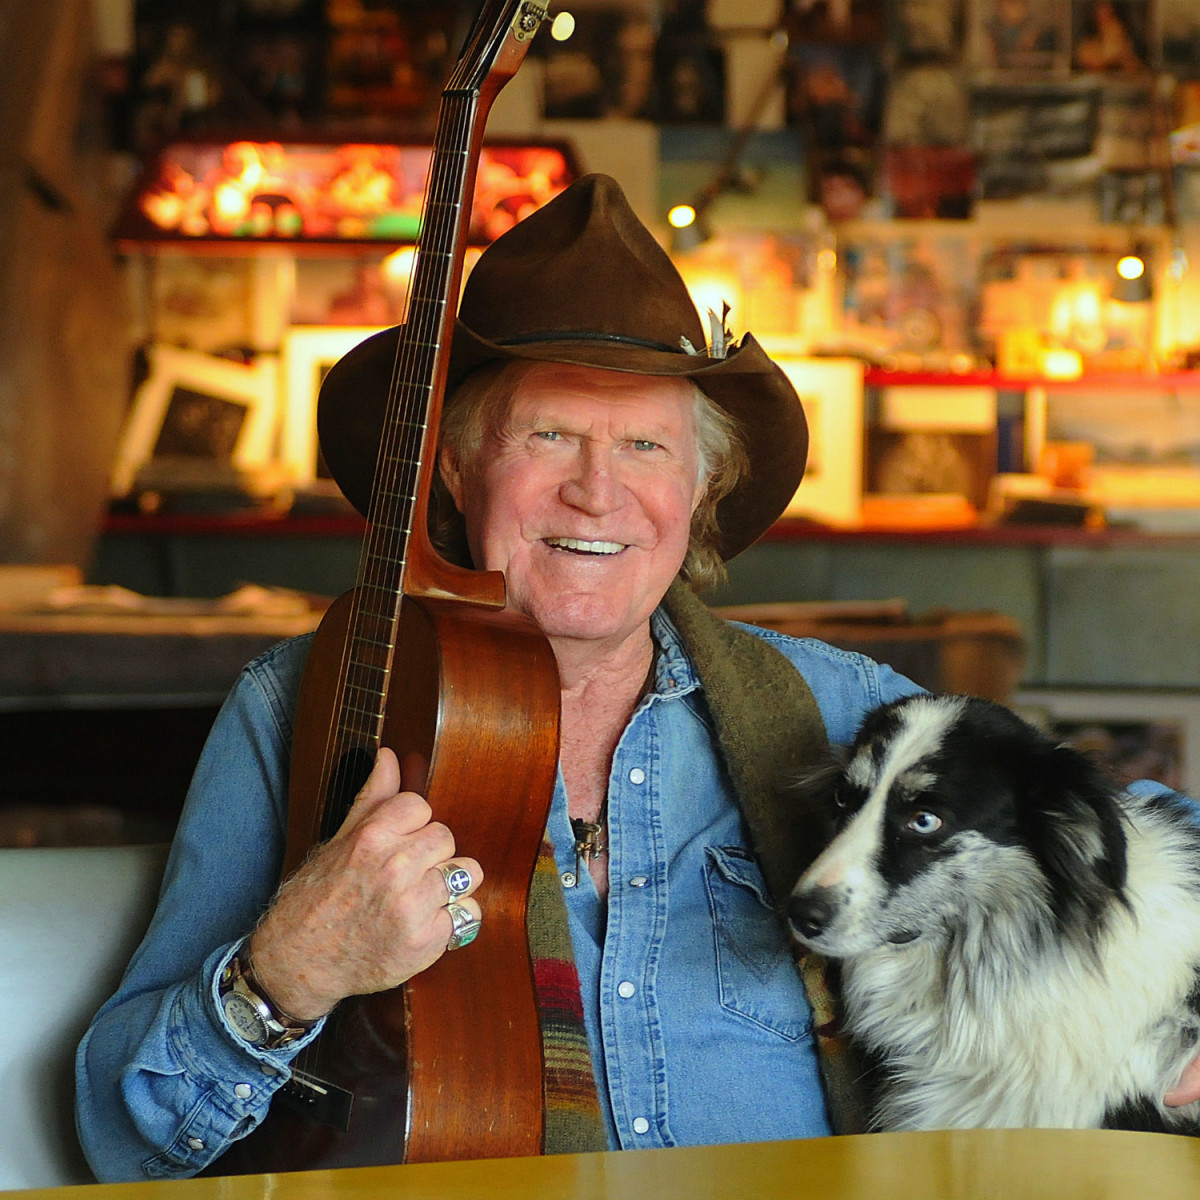 billy joe shaver - photo #6